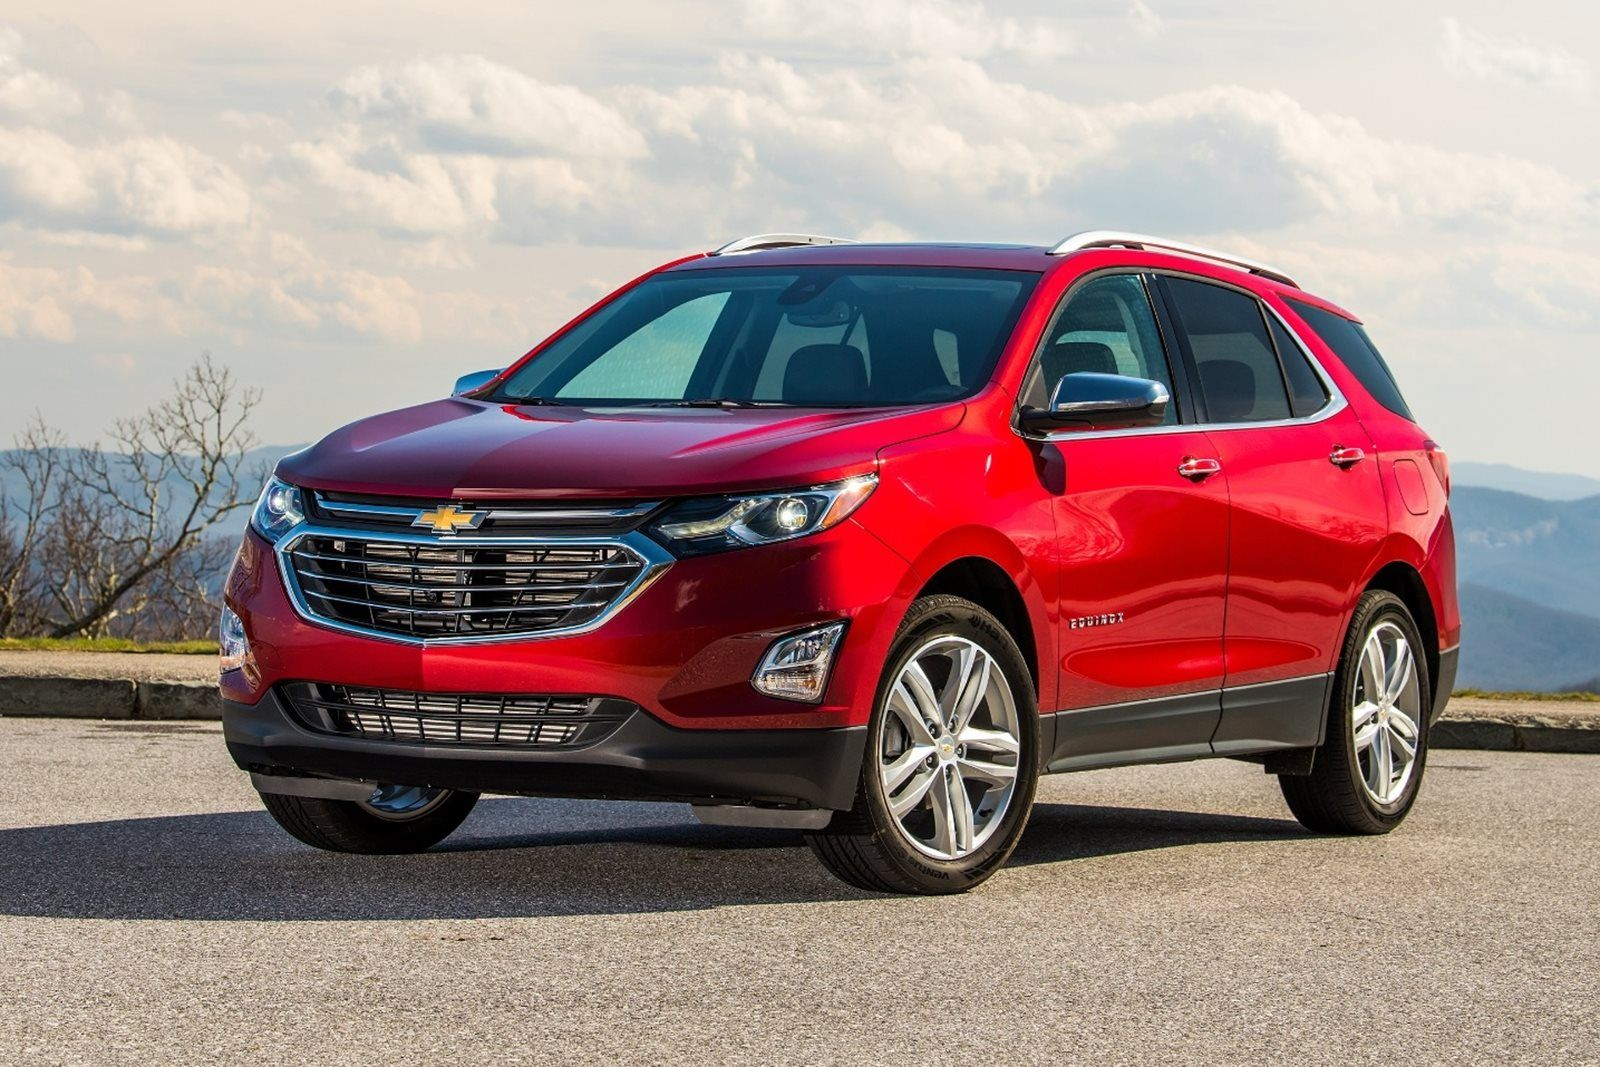 2020 Equinox Review.2020 Chevrolet Equinox Review Ratings Mpg And Prices